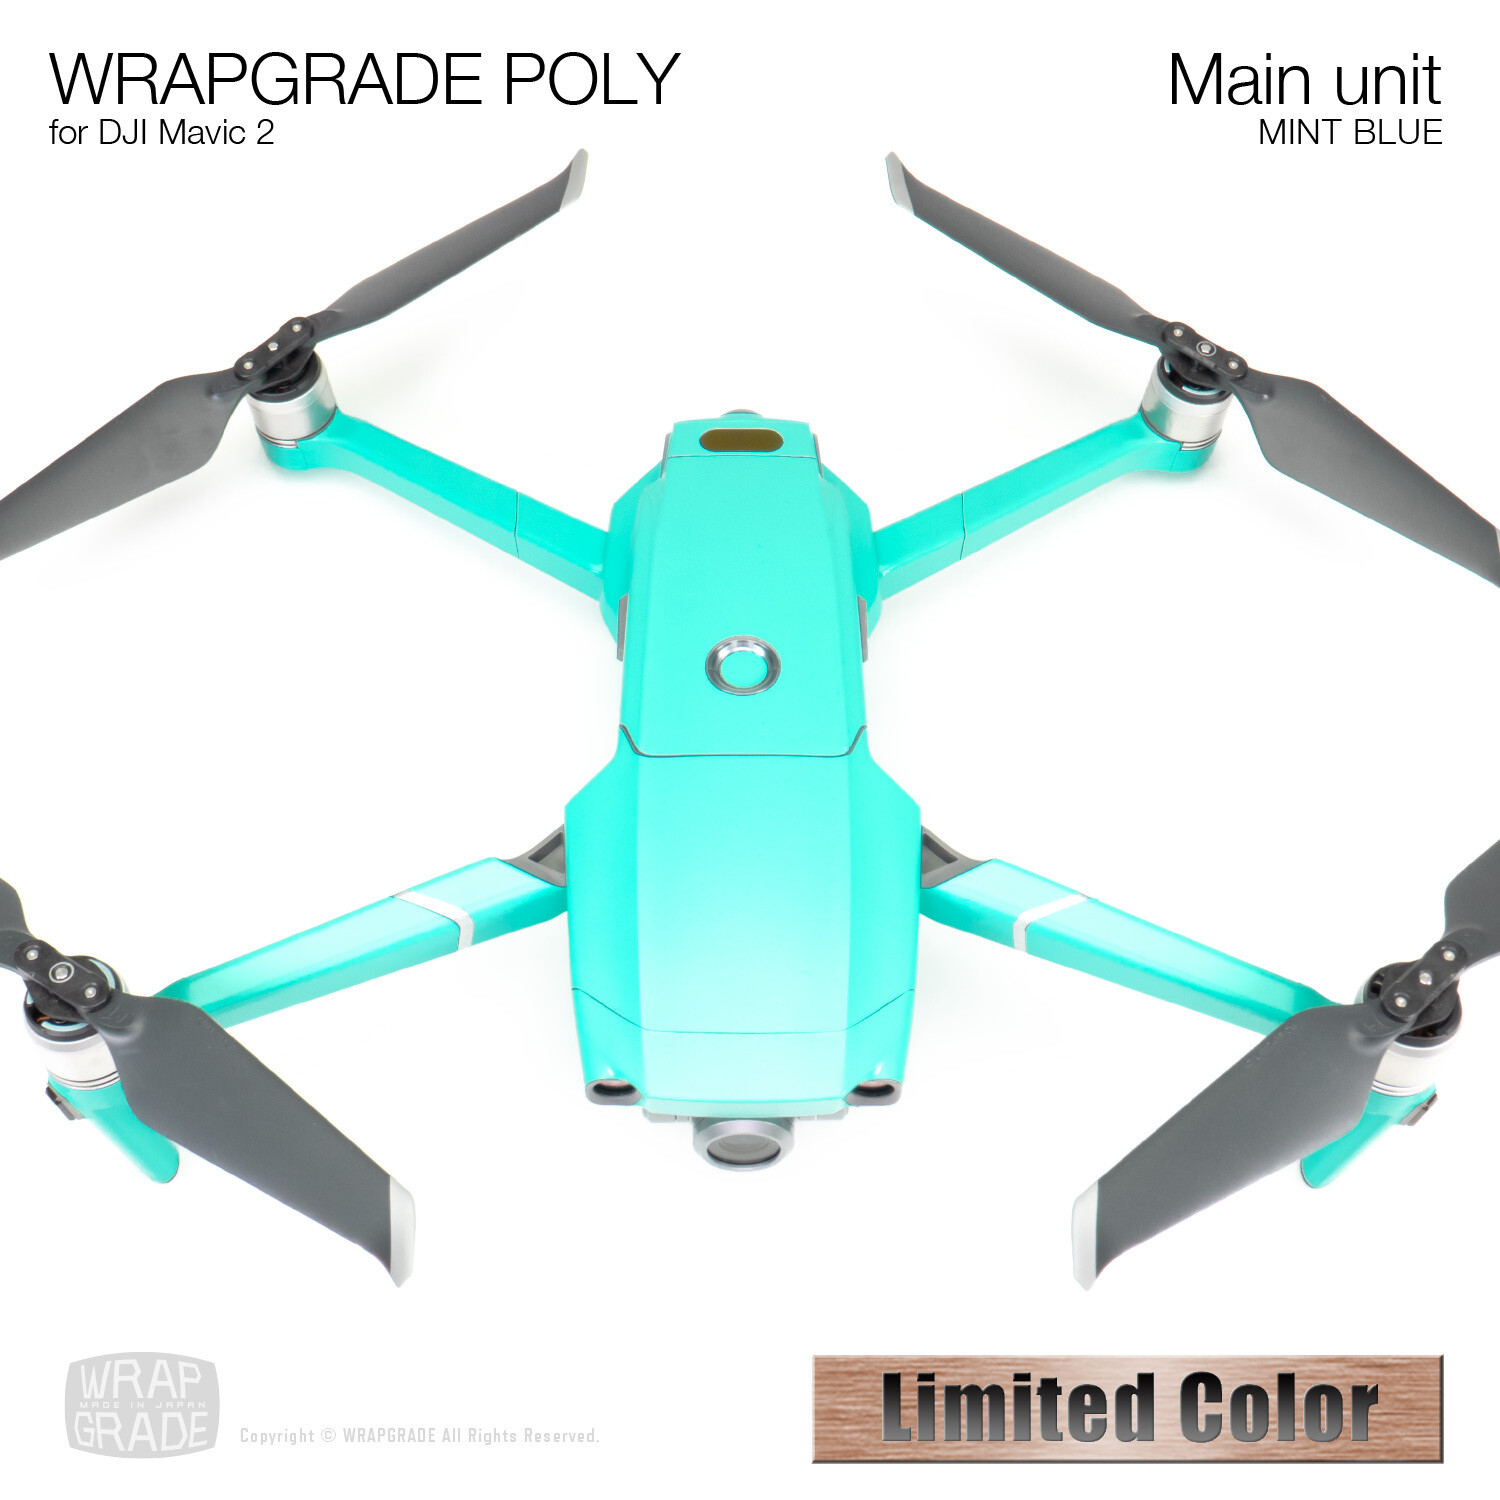 Wrapgrade Poly Skin for DJI Mavic 2 | Main unit (MINT BLUE)【Limited】